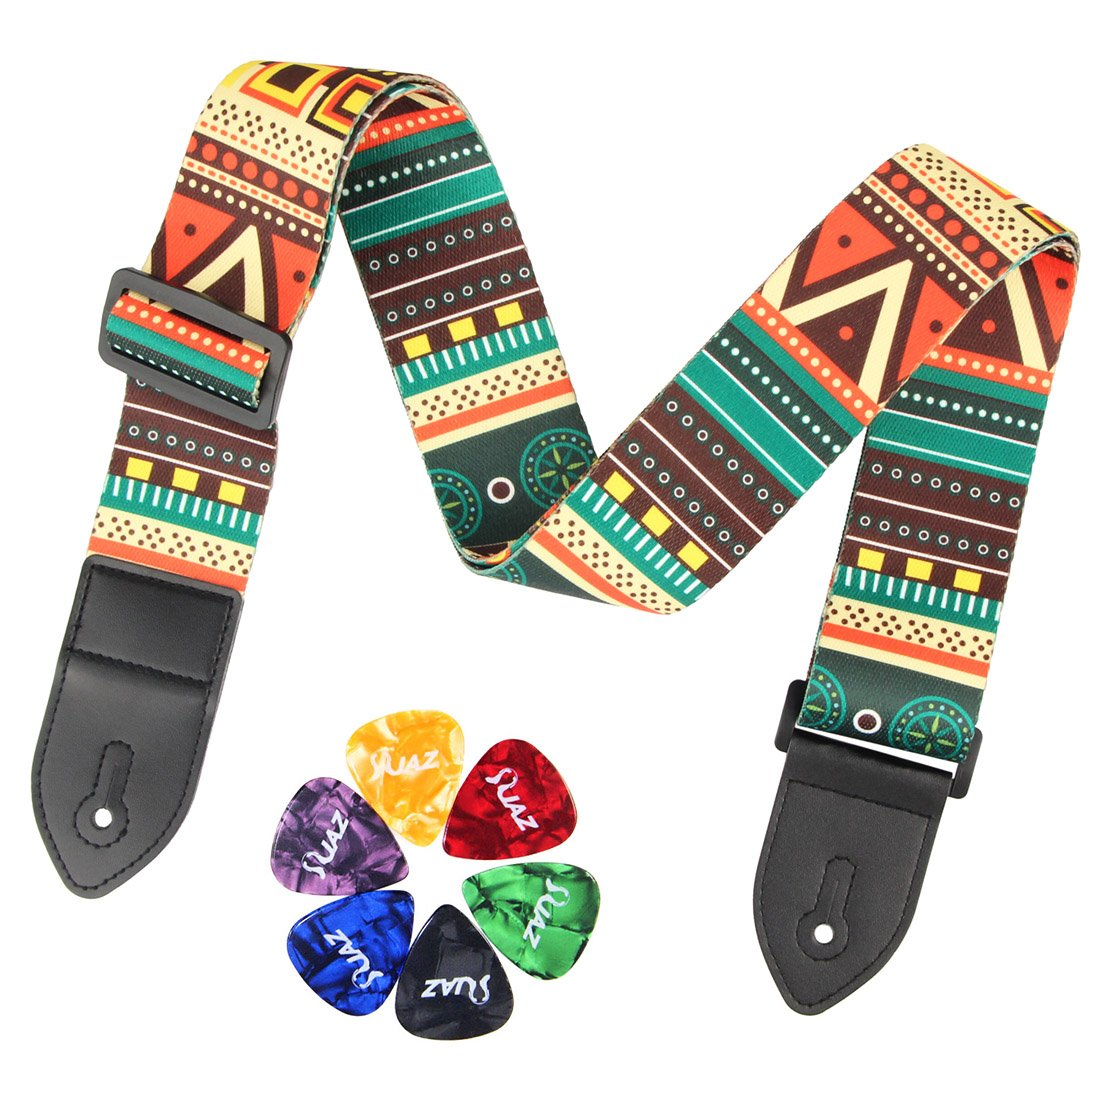 Guitar Strap Jacquard Weave Hootenanny Style, 2 Electric Guitar Strap Acoustic Strap Bass Strap with 6 Free Guitar Picks (Lightening Blue) Deedose guitar strap TH